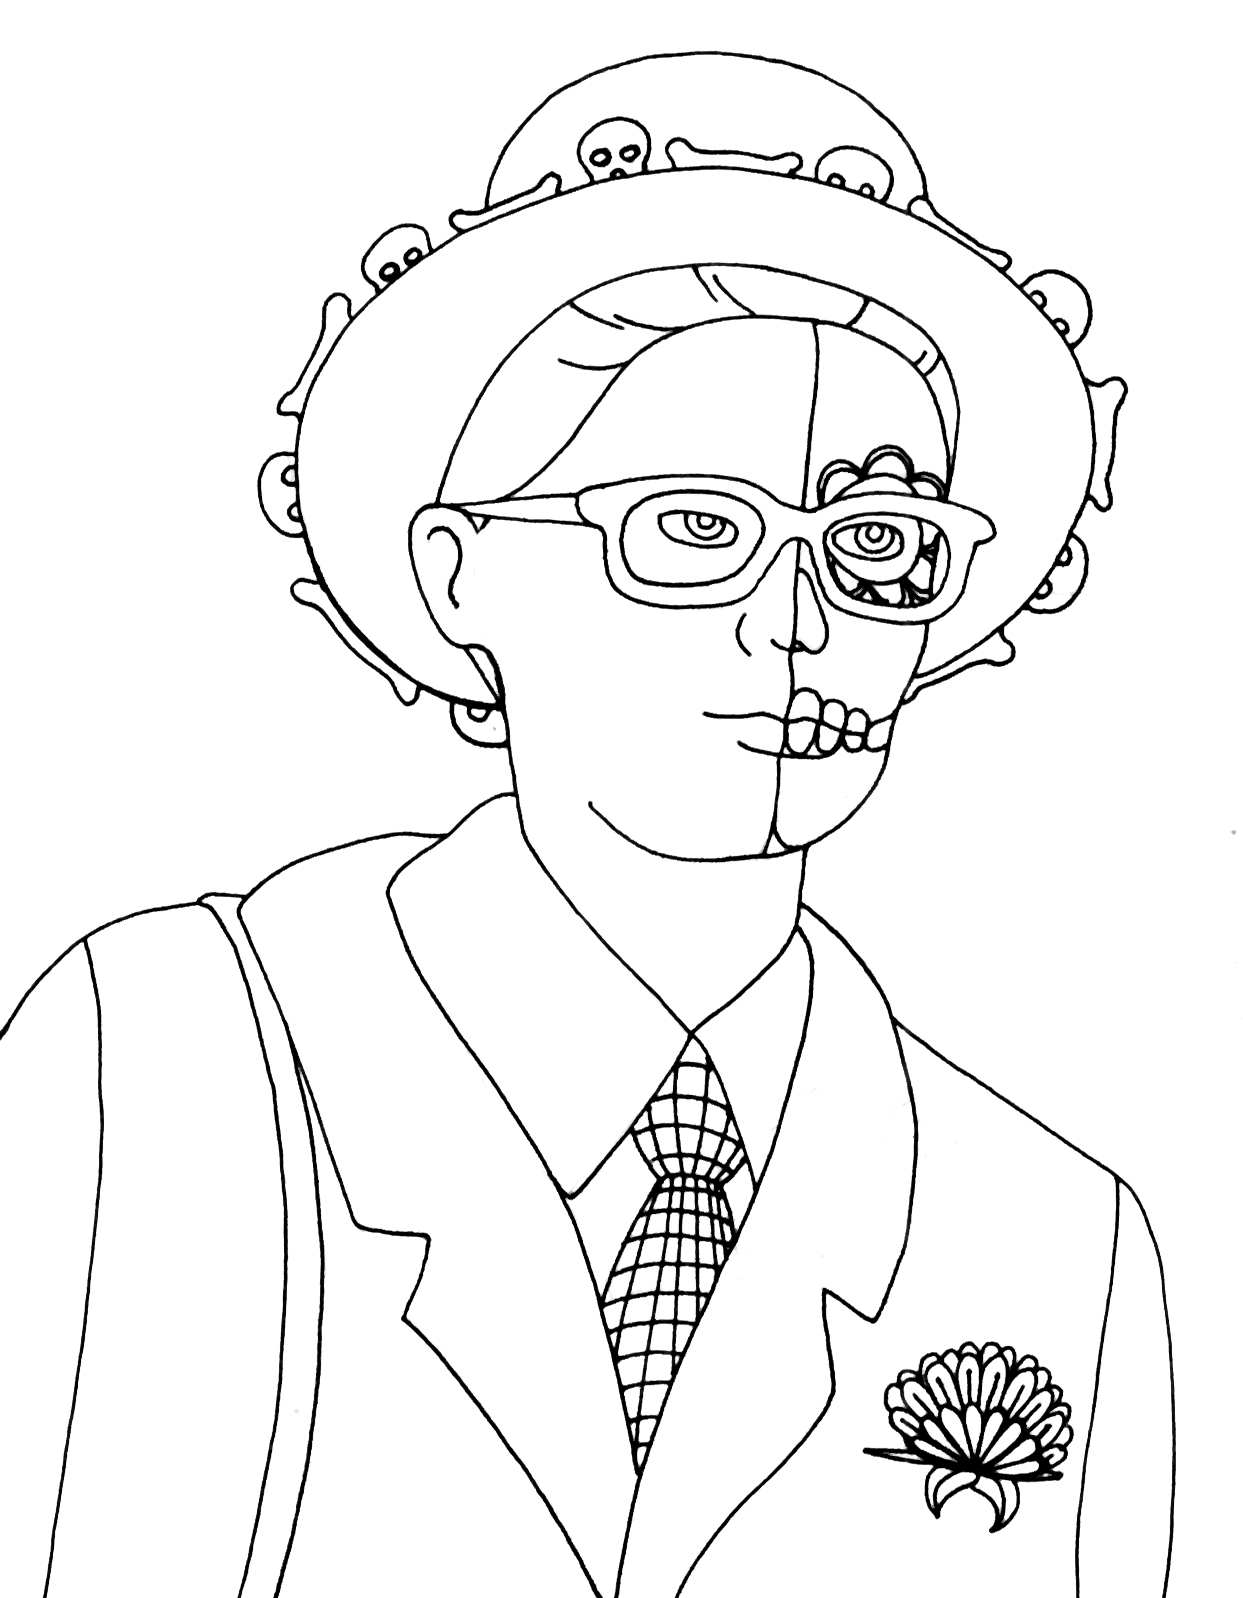 coloring pages of people children 7 people coloring pages coloring book pages people of coloring